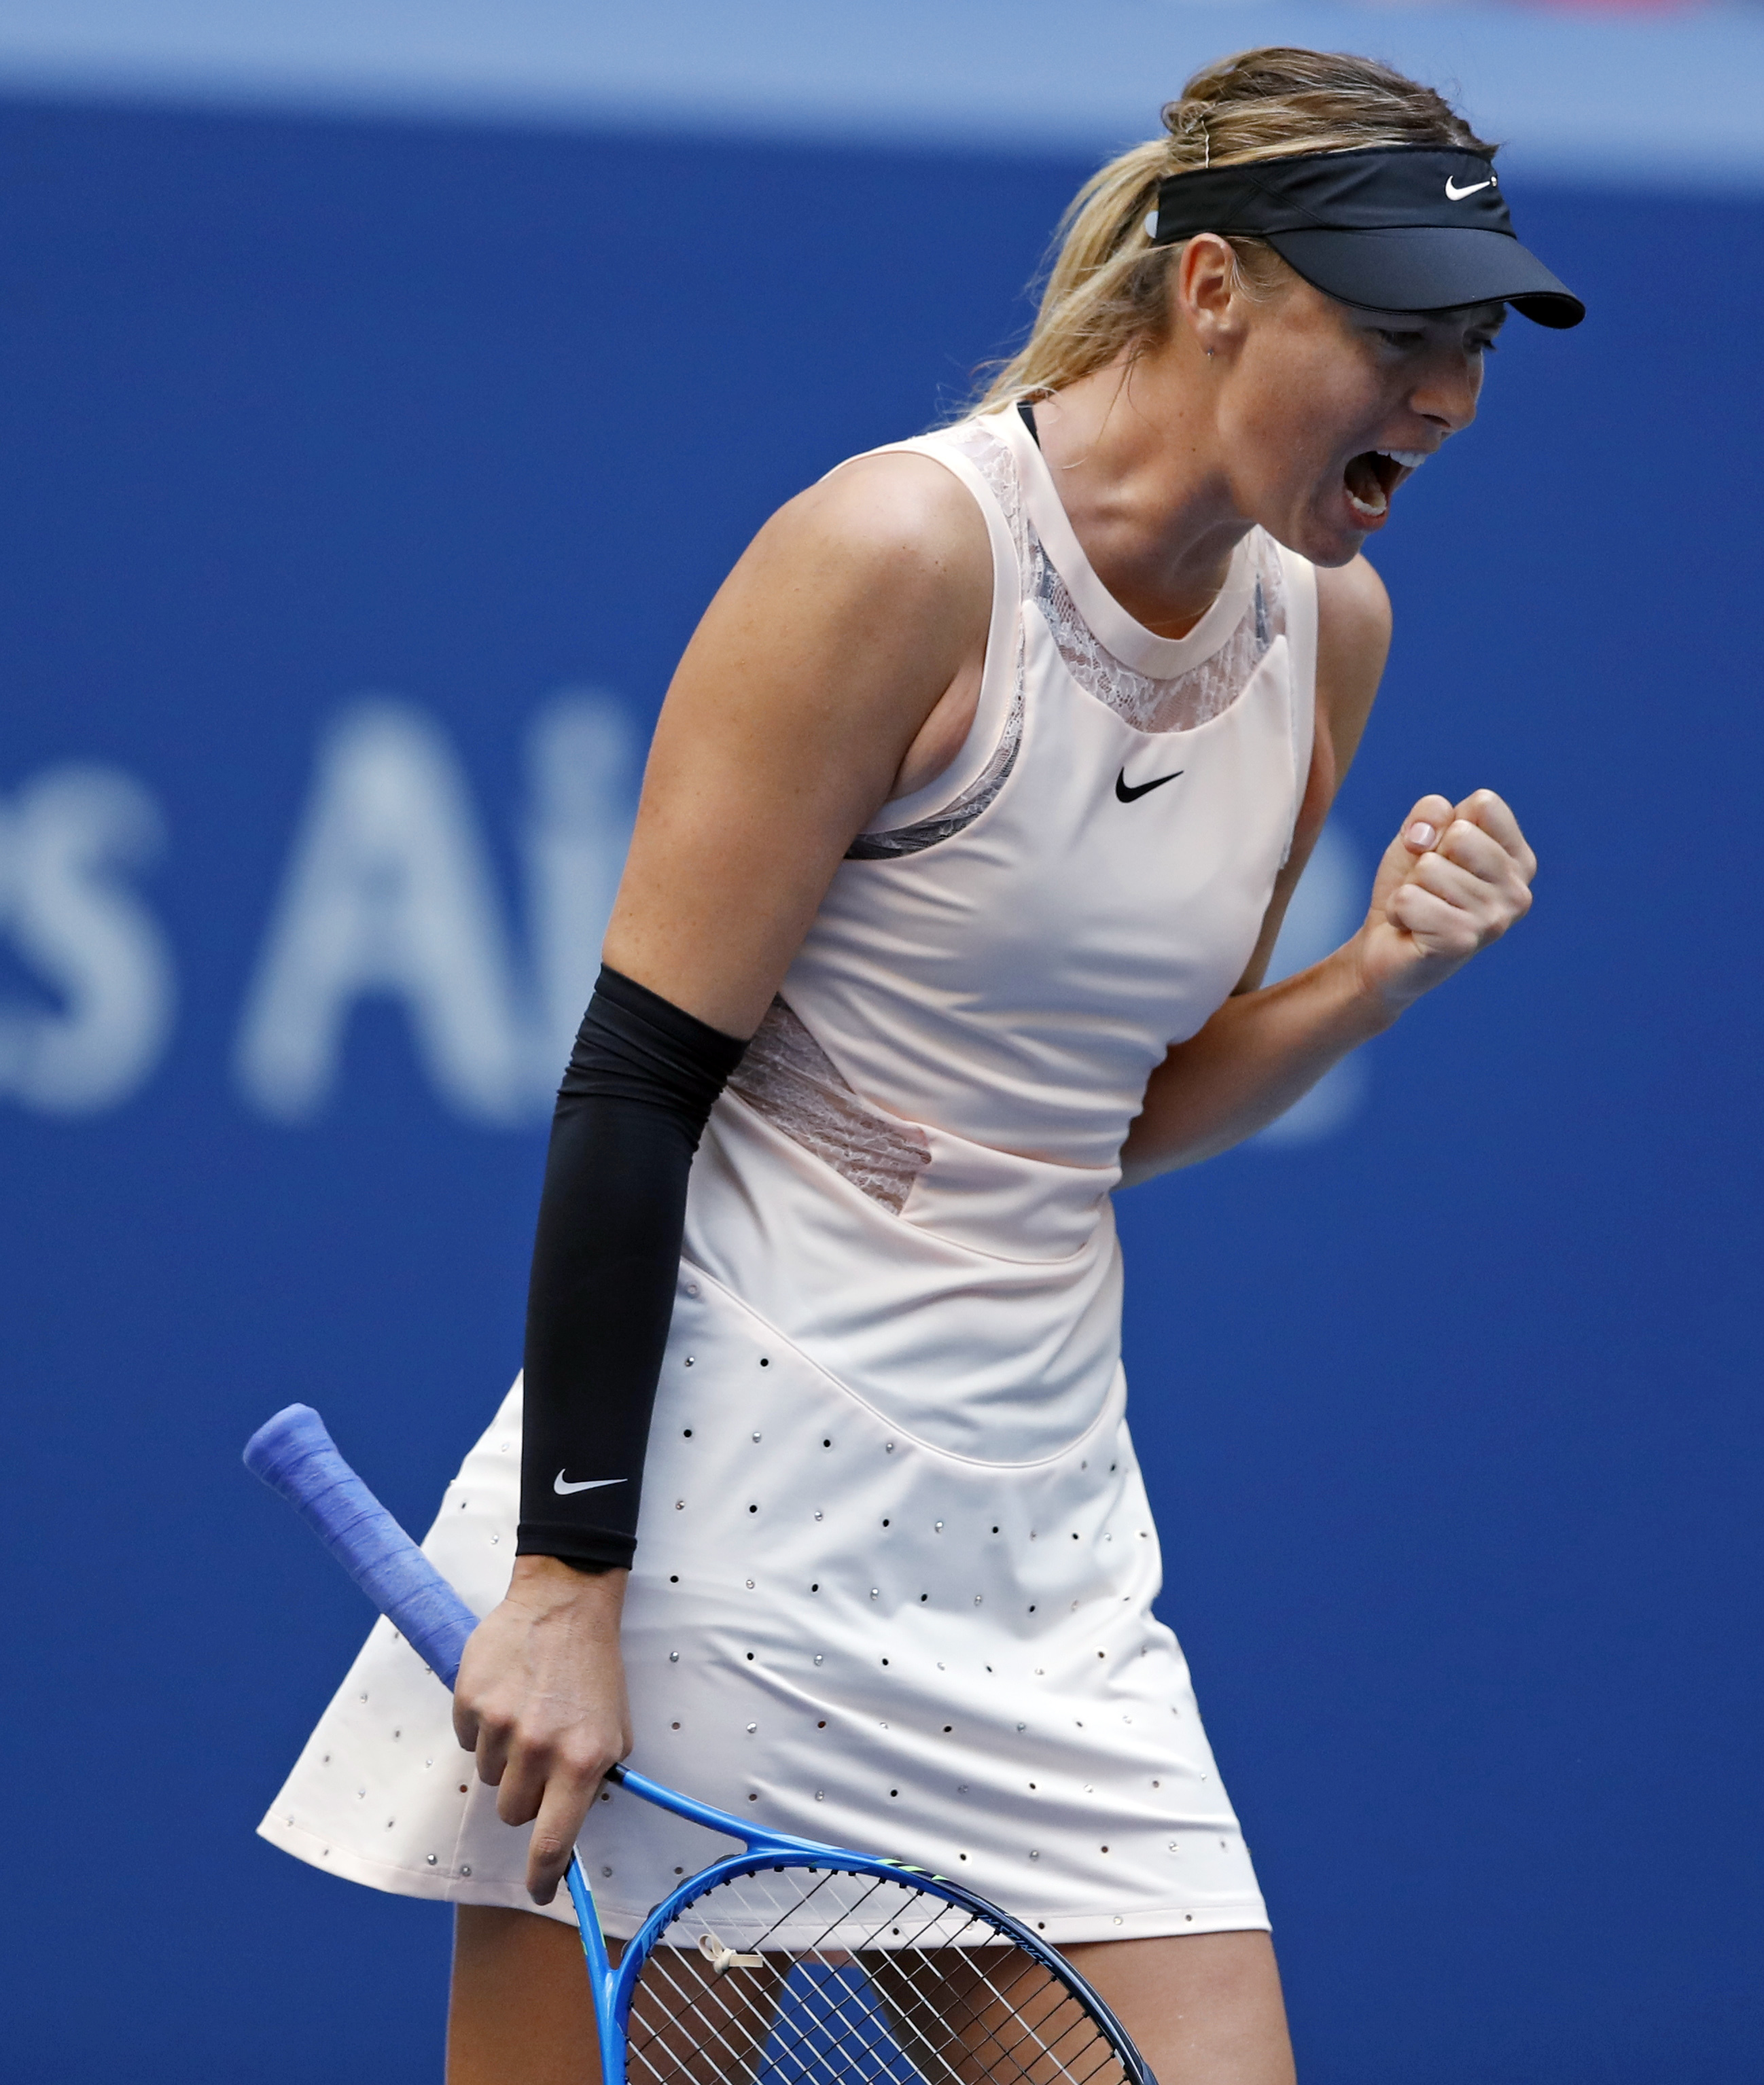 Maria Sharapova, of Russia, reacts after scoring a point against Timea Babos, of Hungary, during the second round of the U.S. Open tennis tournament, Wednesday, Aug. 30, 2017, in New York. (AP Photo/Adam Hunger)